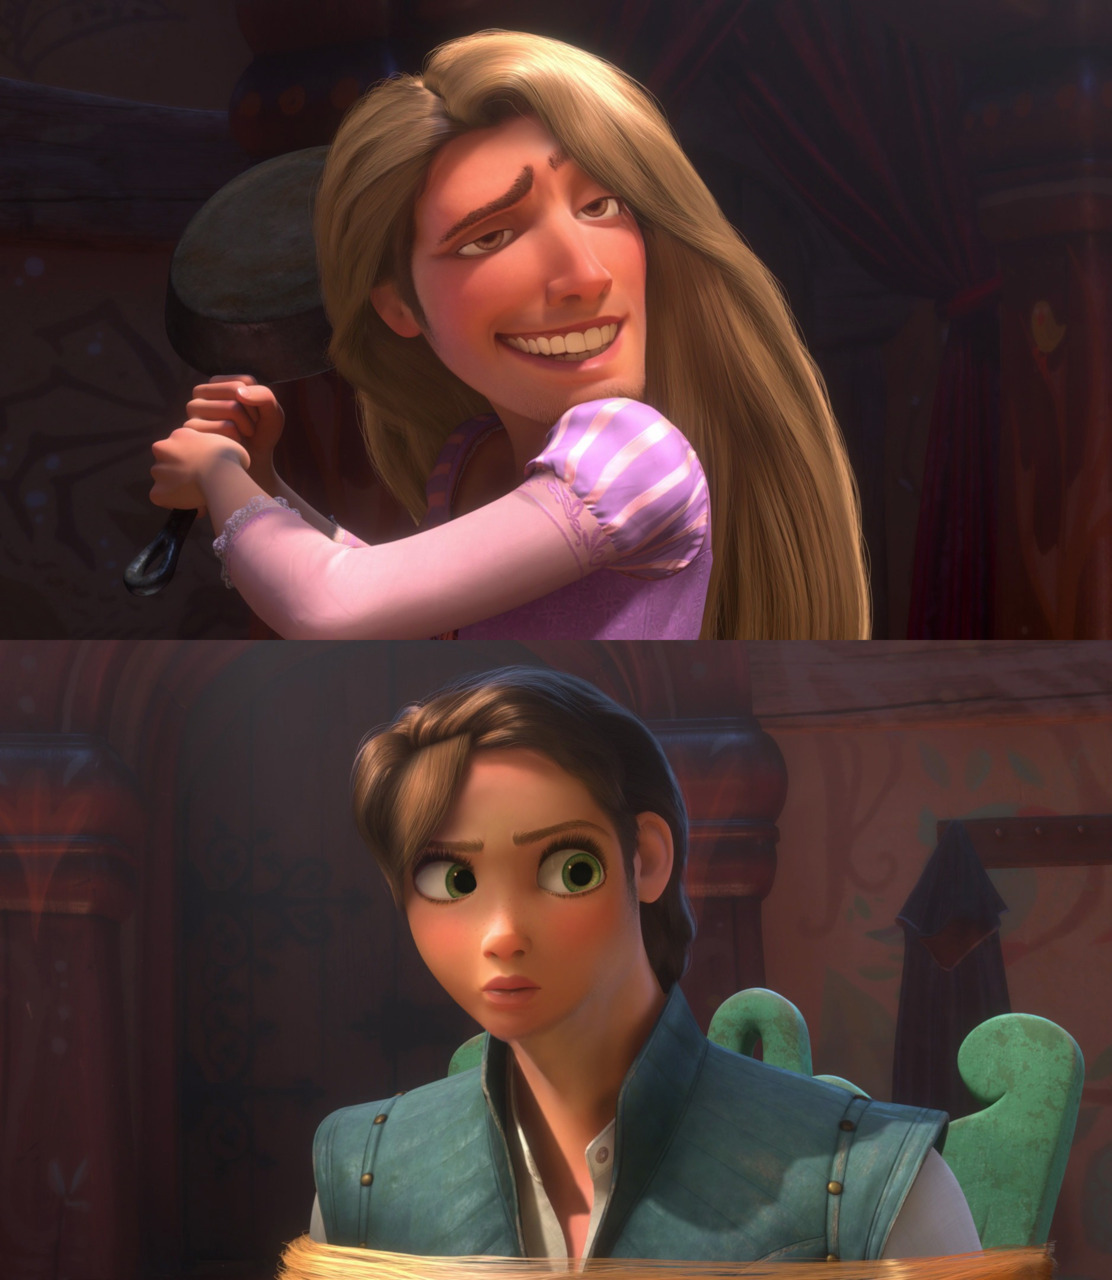 disneyfaceswap:  Submission from rintau. Mod comment: Rintau, you're kind of my favorite person right now.